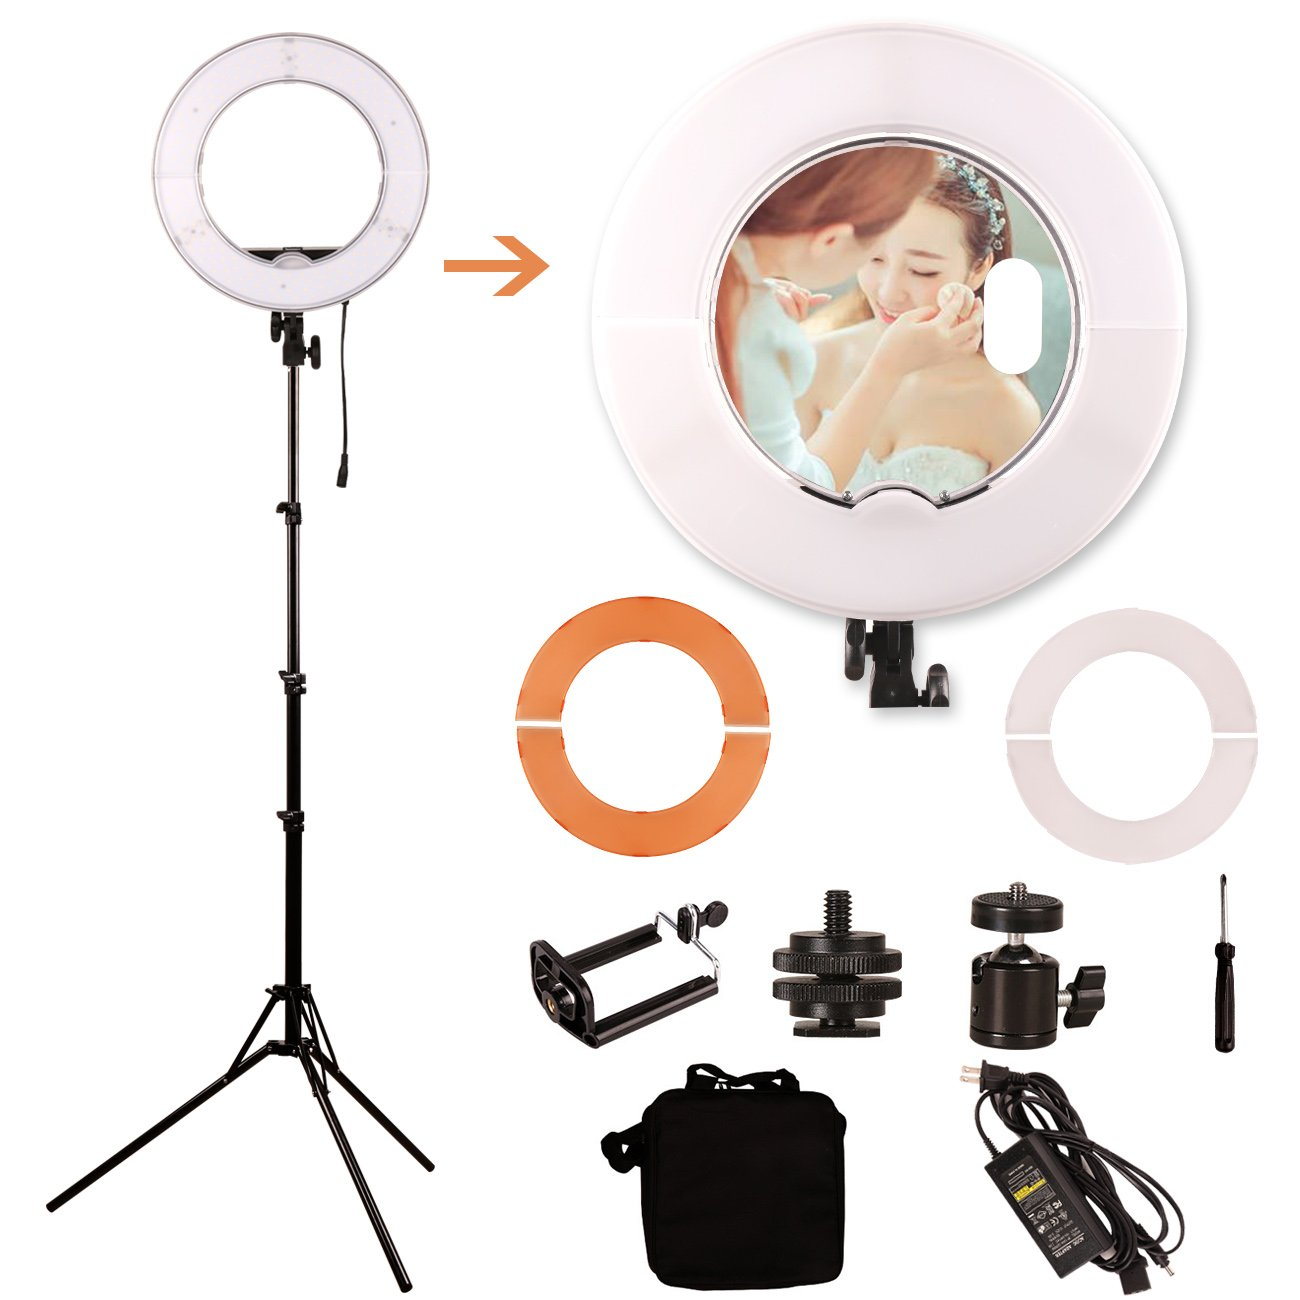 GINSON 12 Inch 180LED Mirror Ring Light with Stand,Makeup Artist Light, Photography Lights